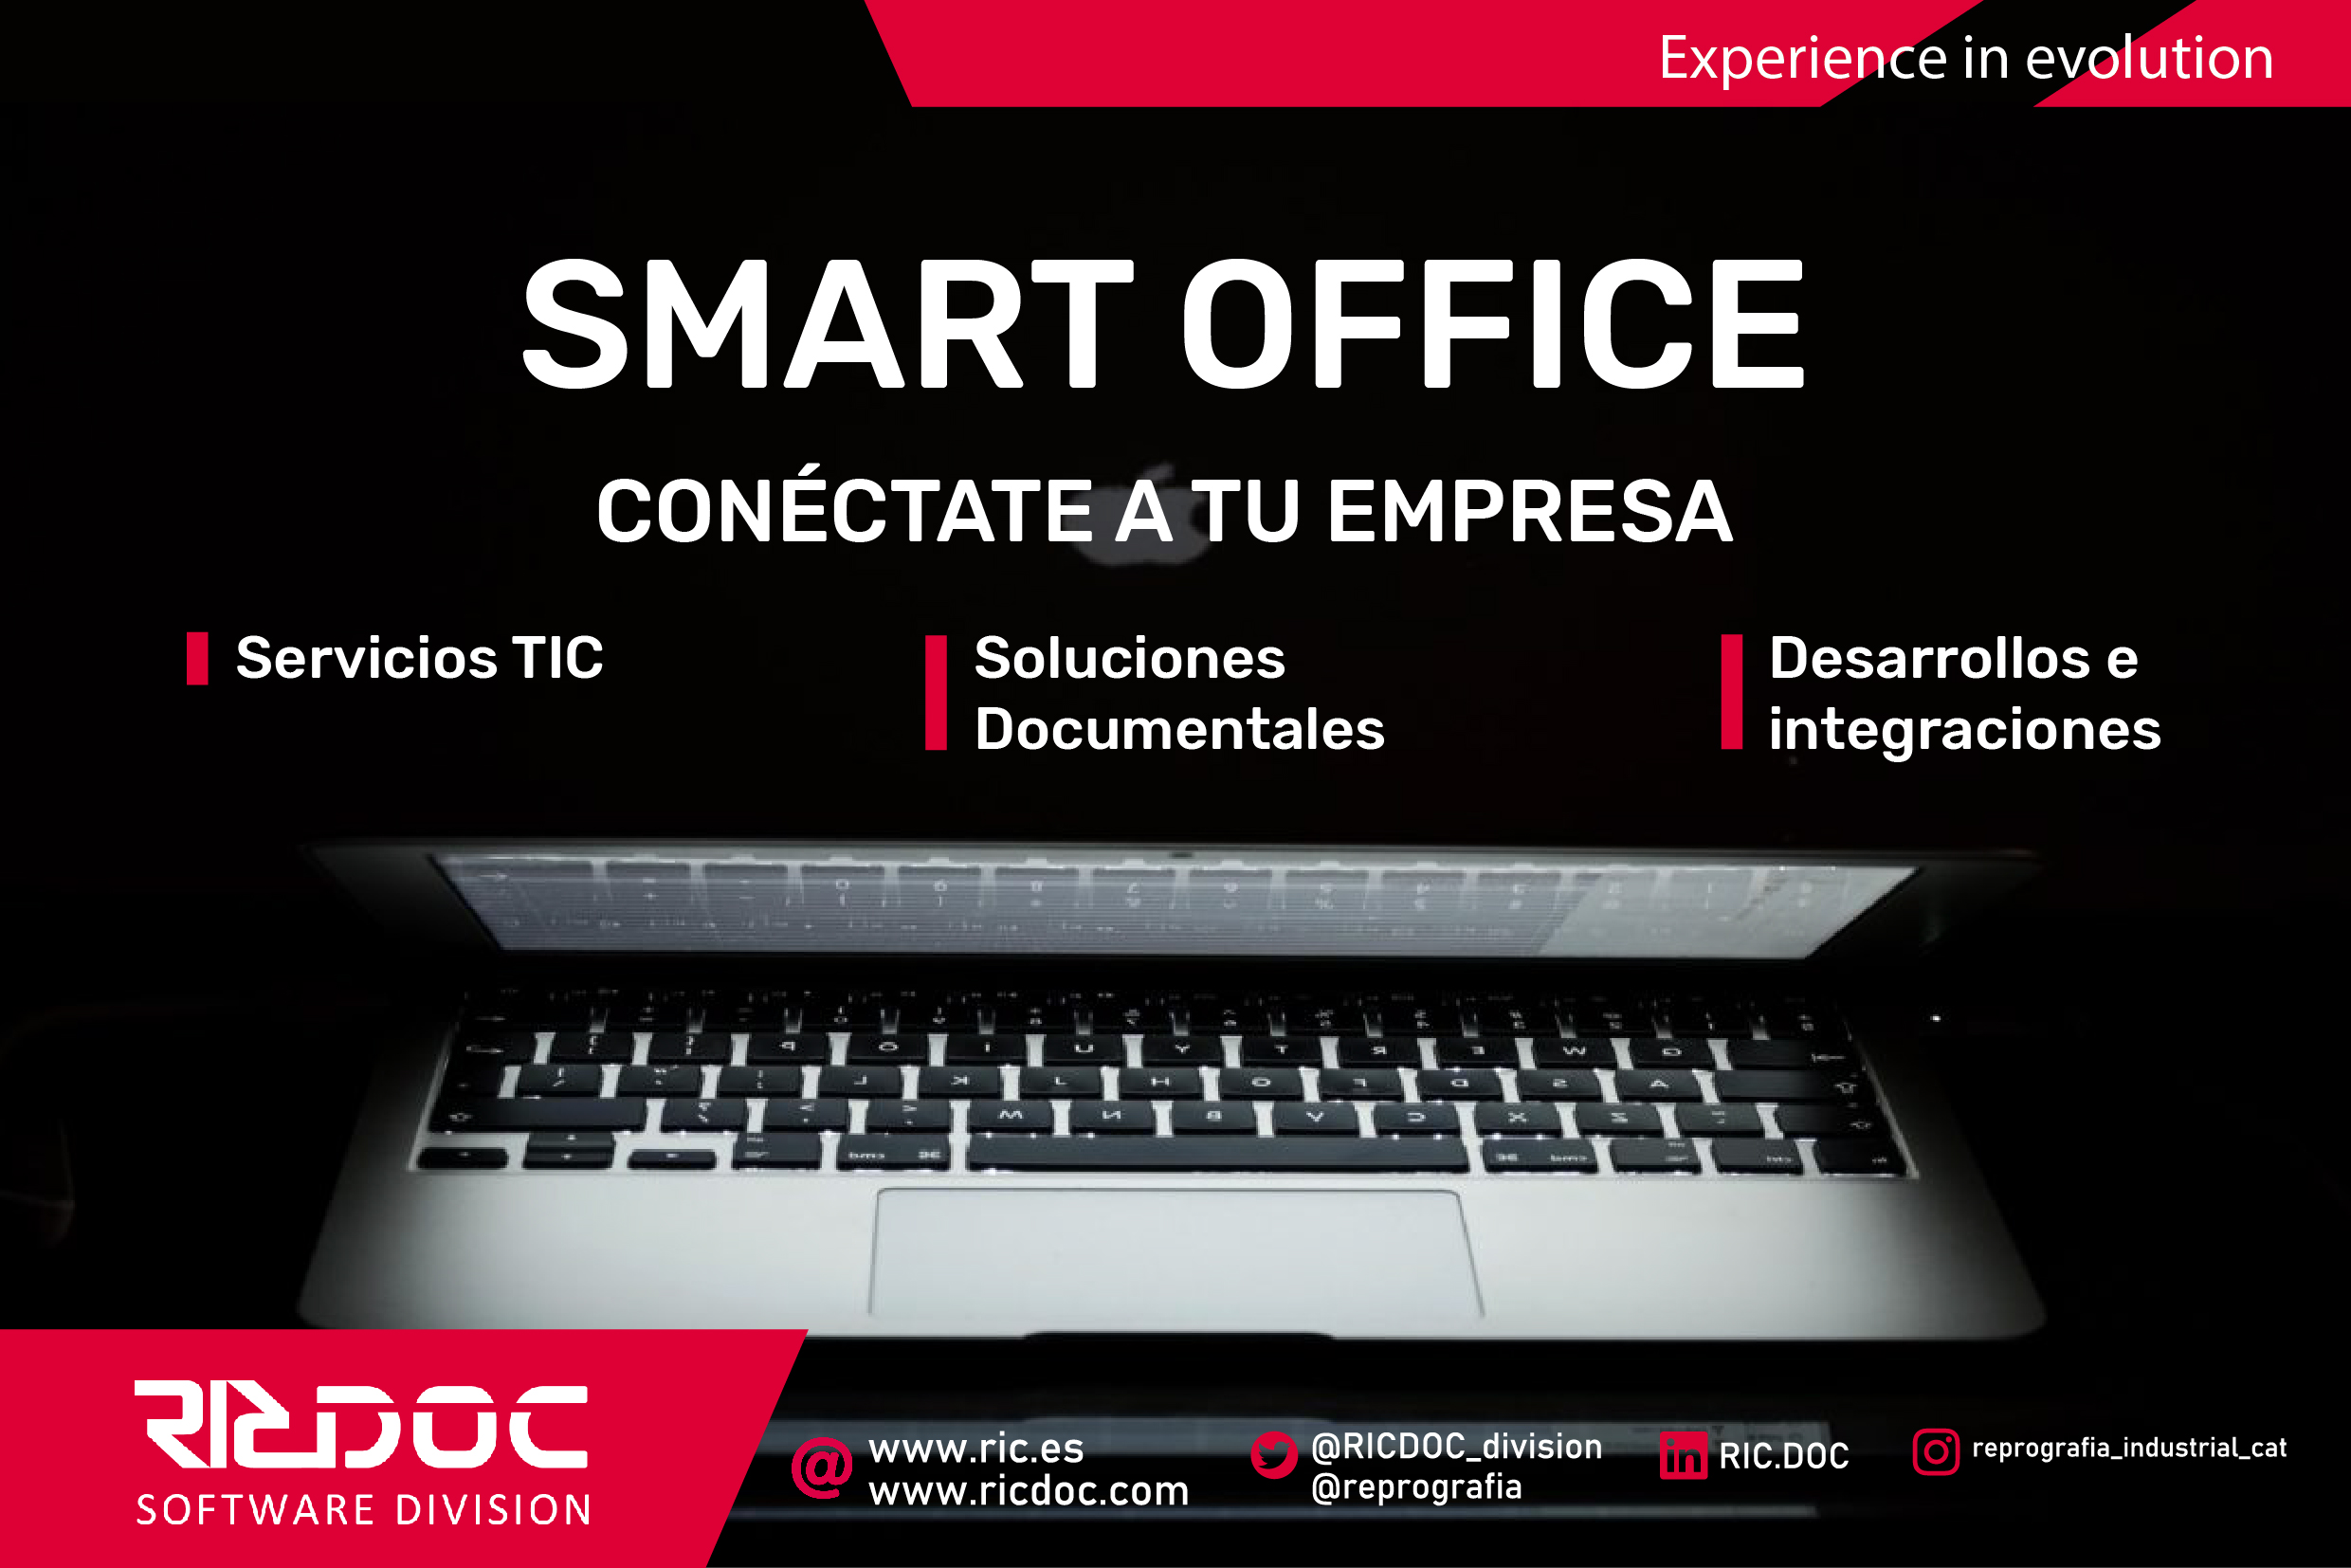 Smart Office, controla tu negocio desde RIC.DOC